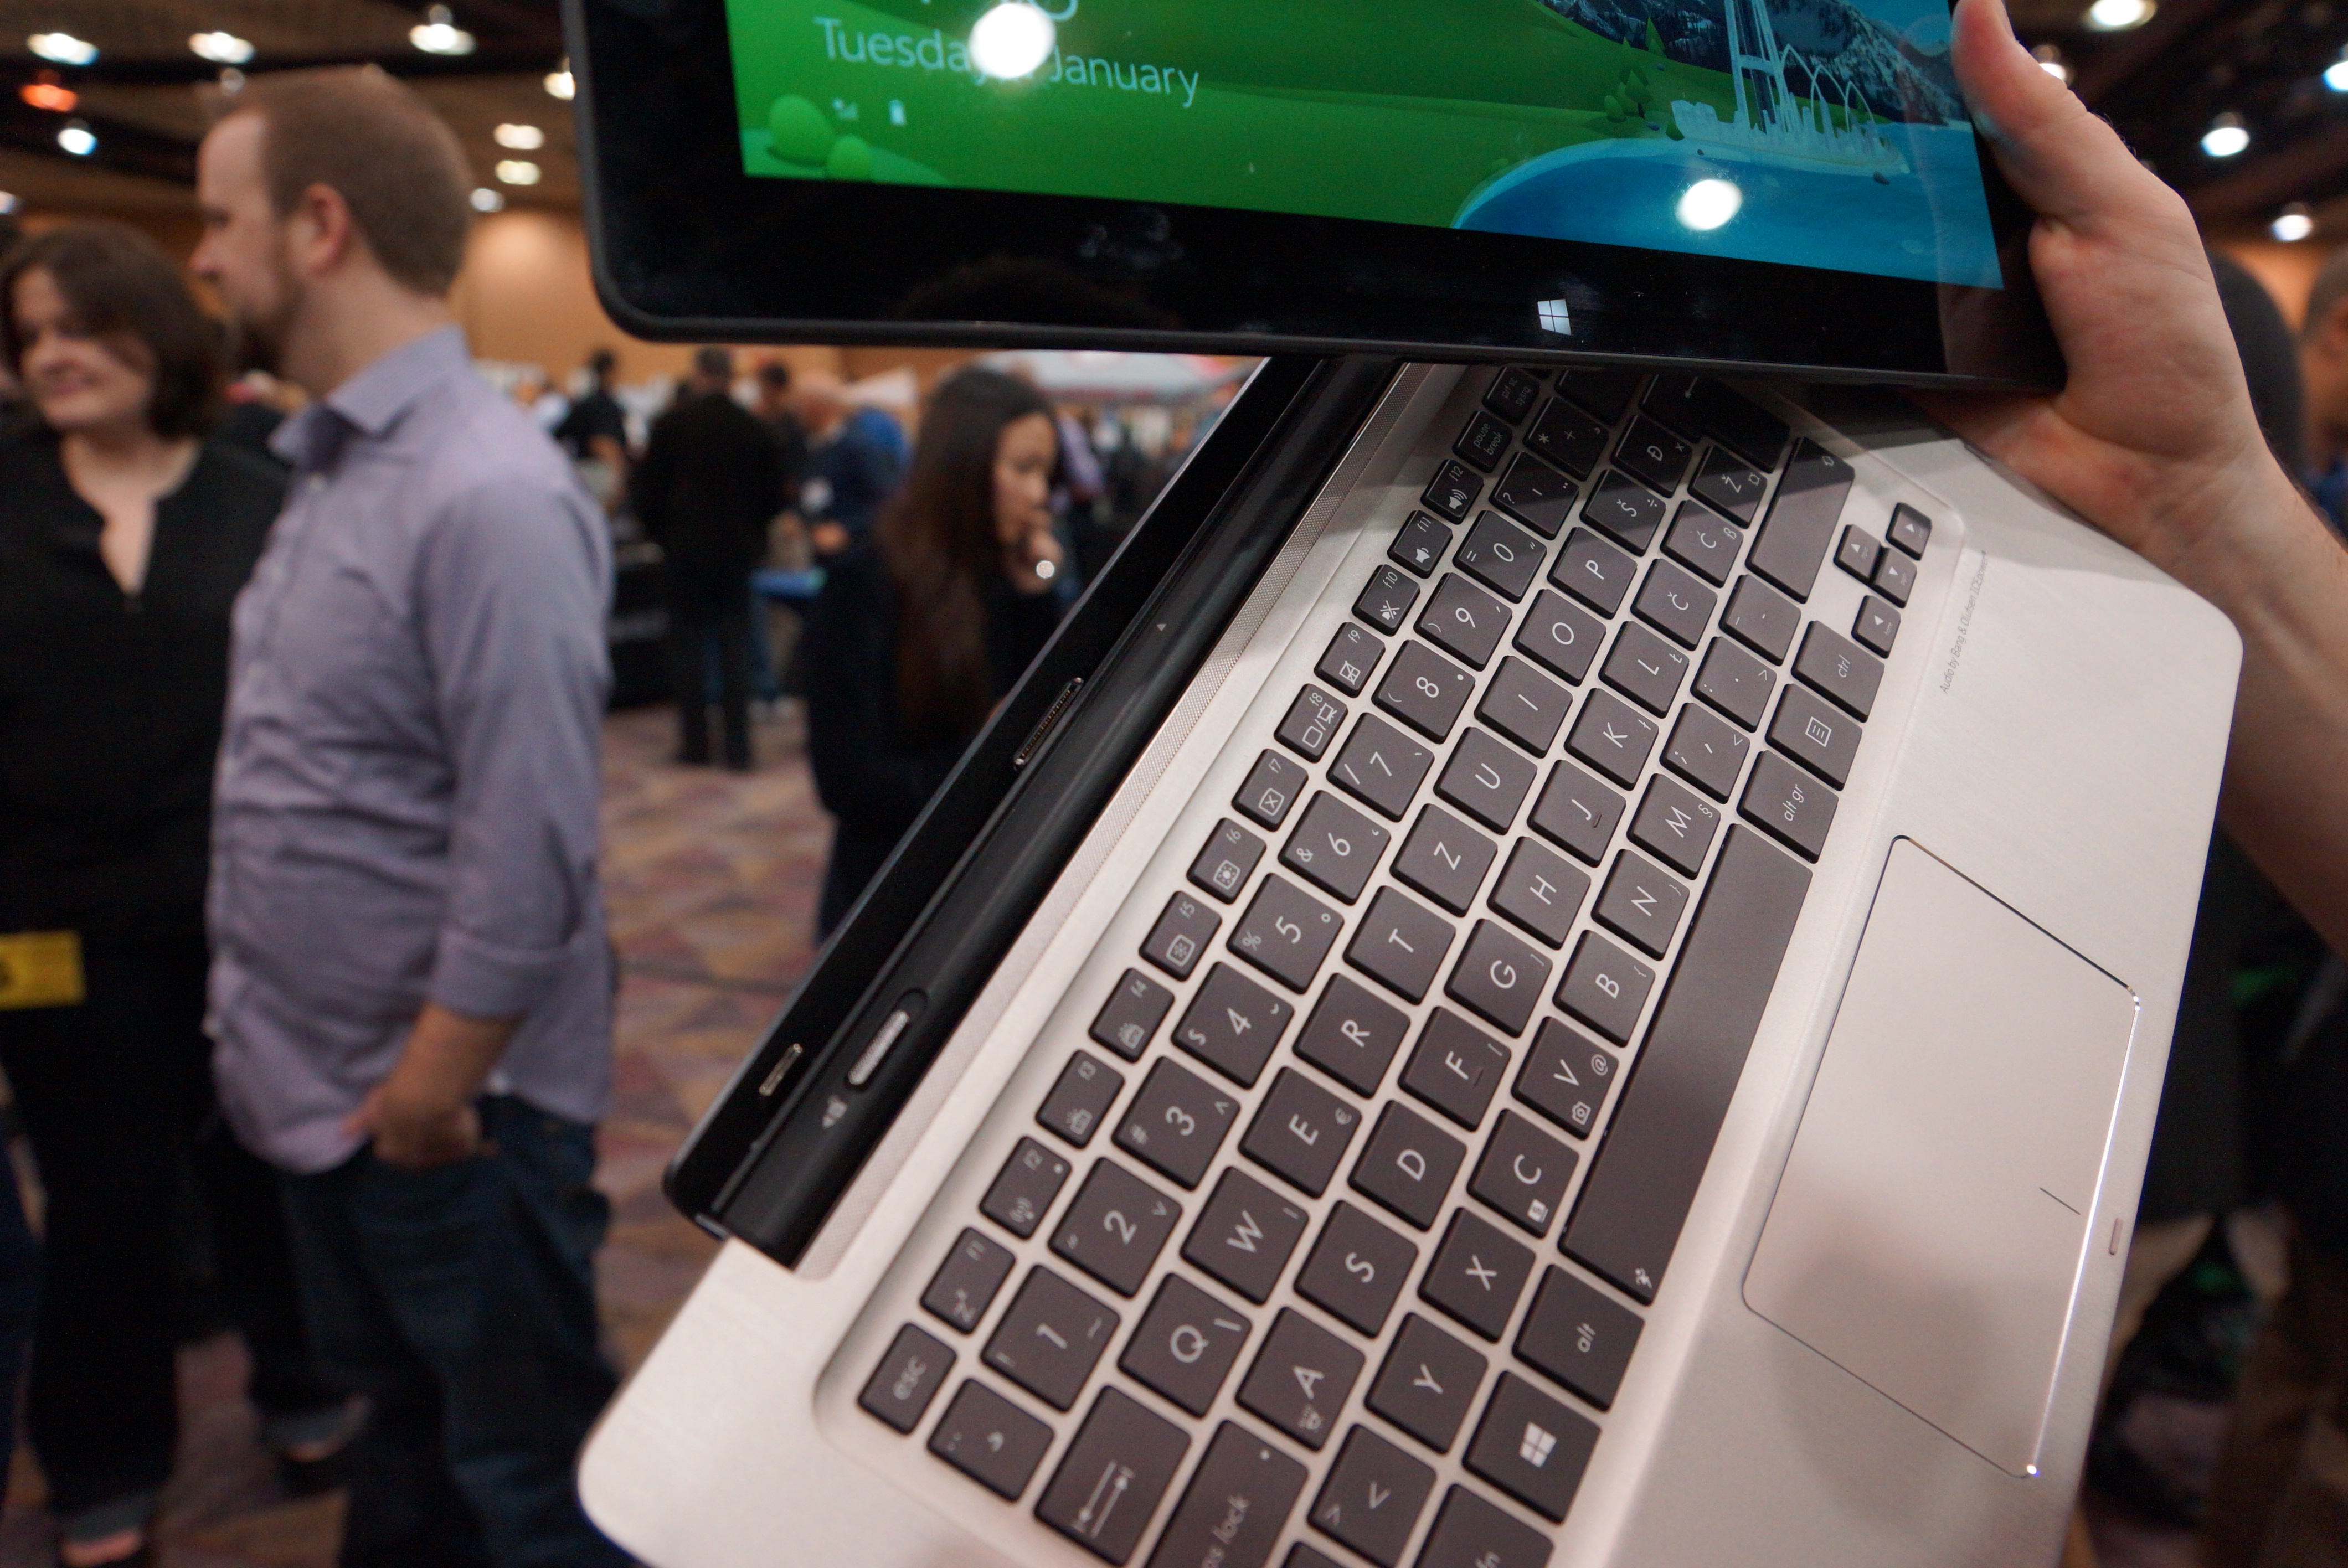 Review Tablet ASUS Transformer Book TX300CA-C4026H Hybrid 2 in 1_3